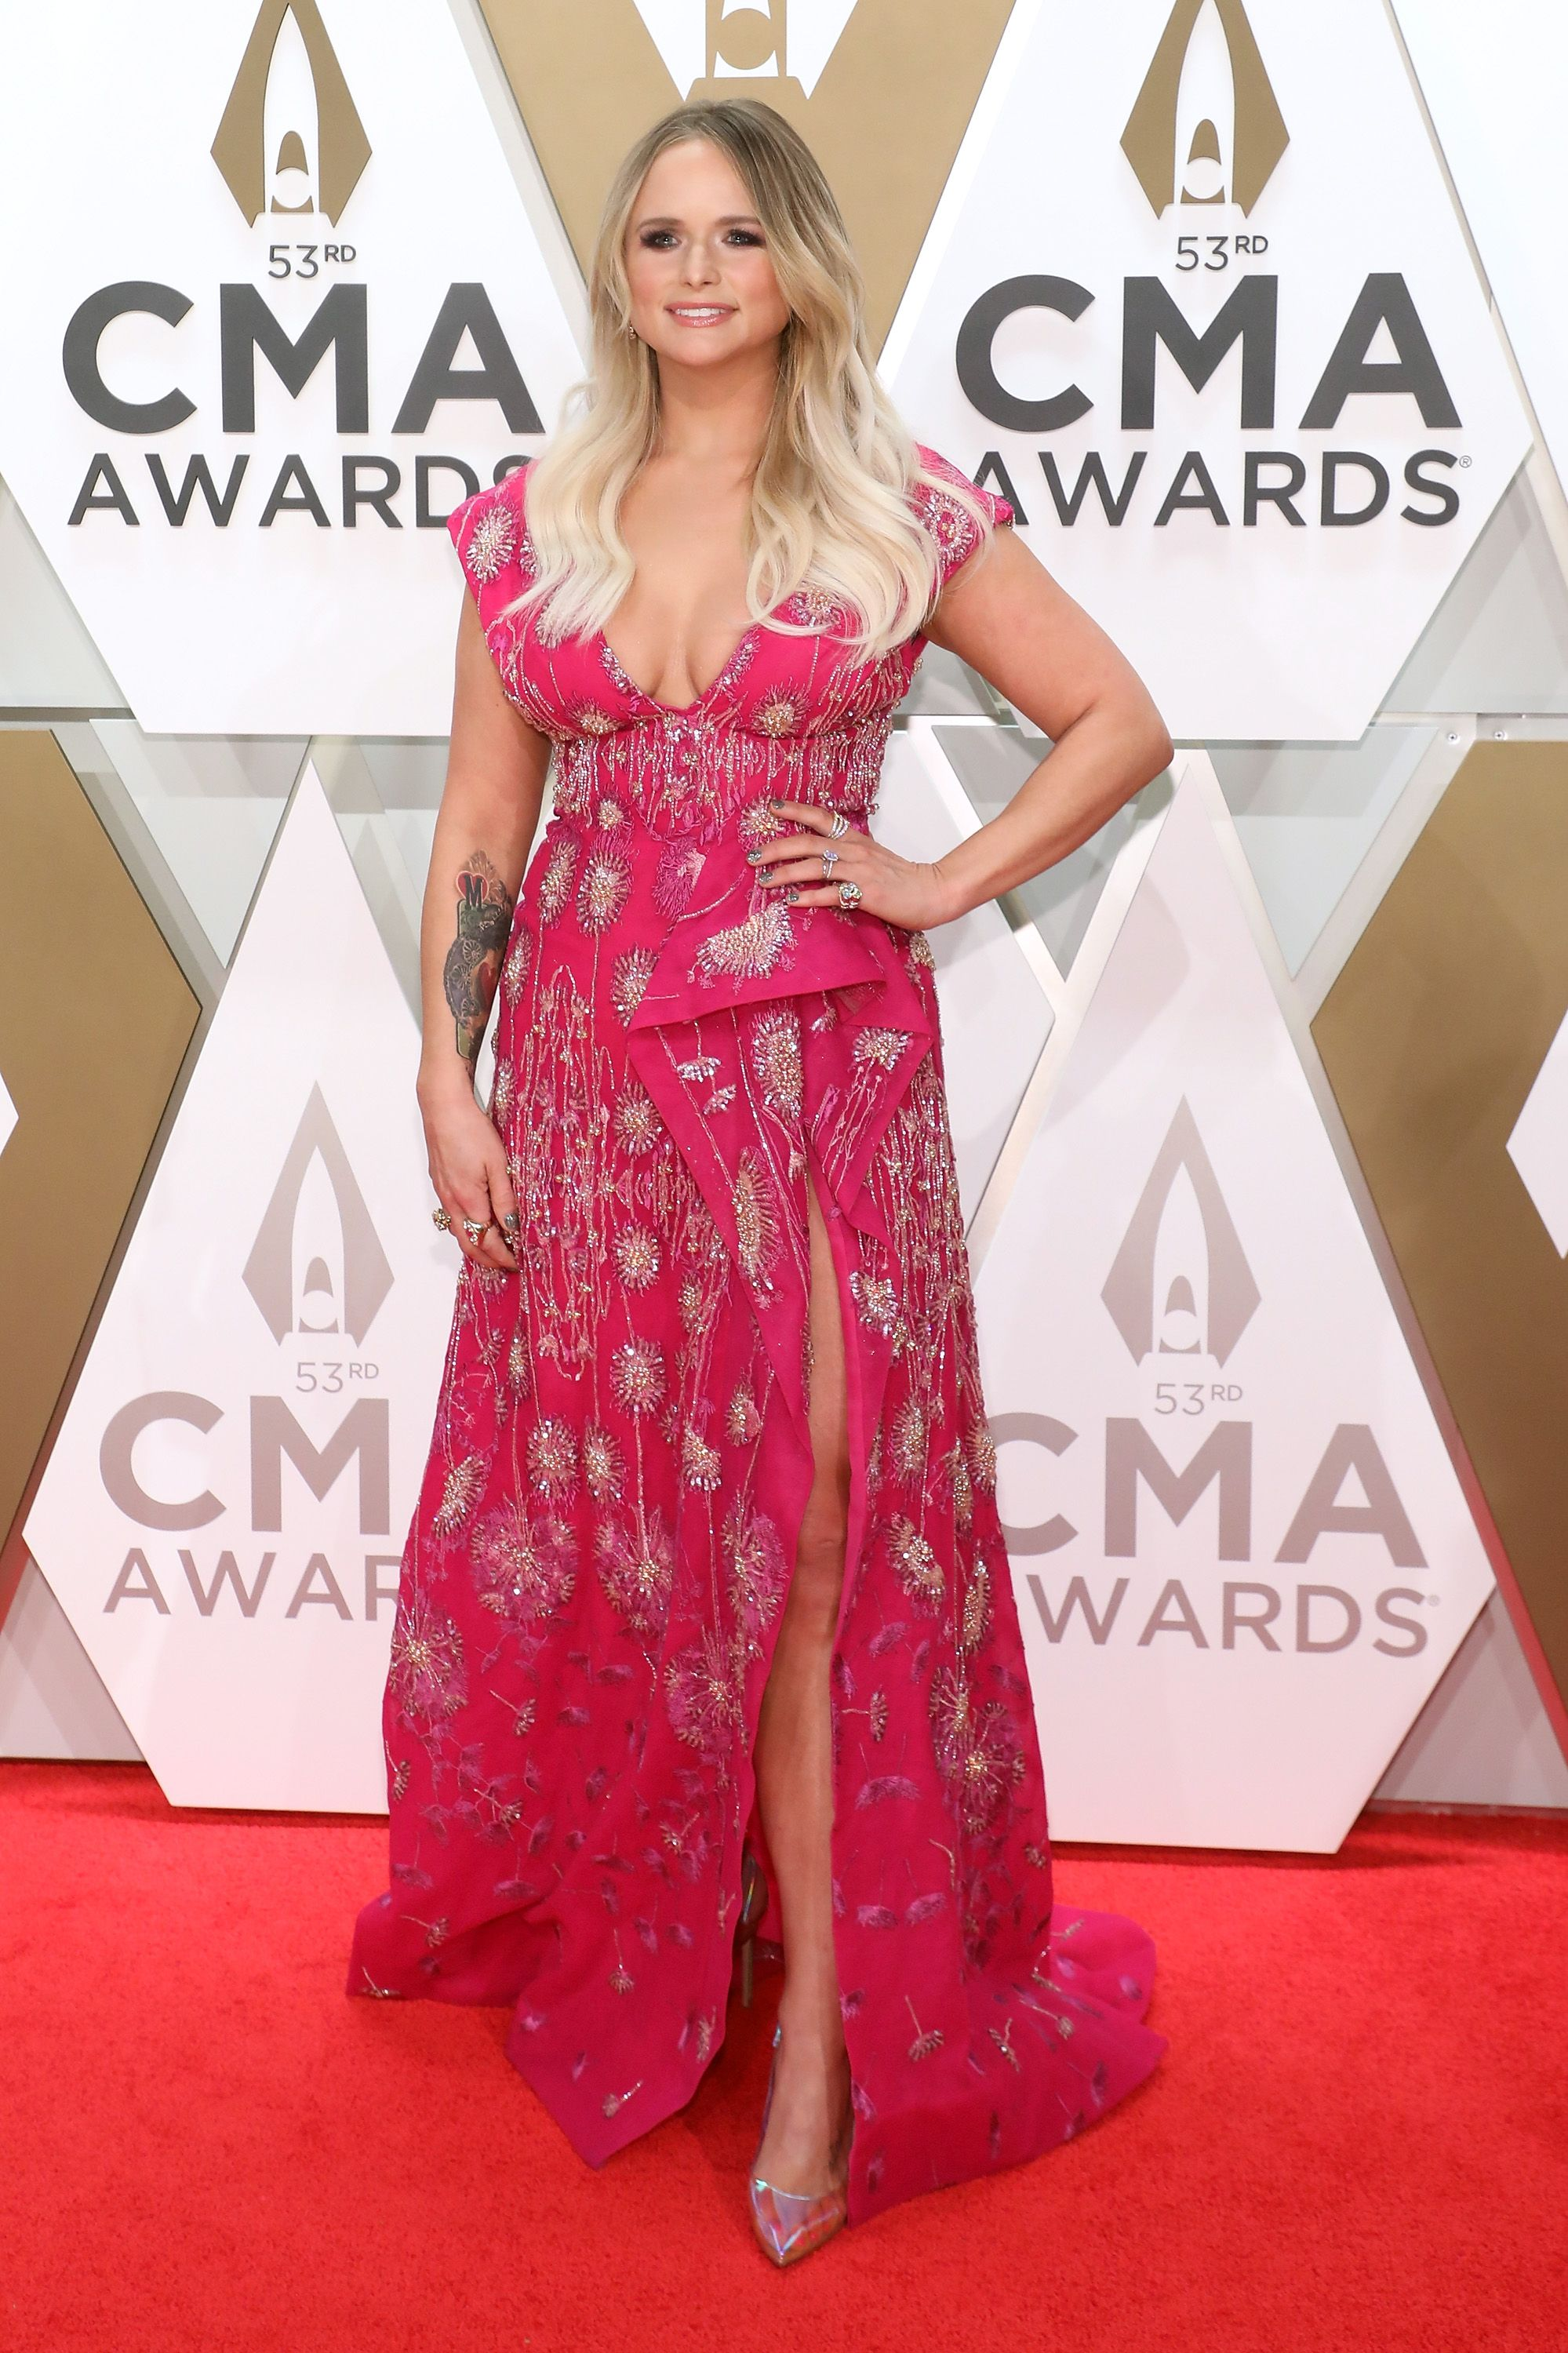 Miranda Lambert at the 53rd annual CMA Awards at Bridgestone Arena on November 13, 2019, in Nashville, Tennessee Photo: Taylor Hill/Getty Images